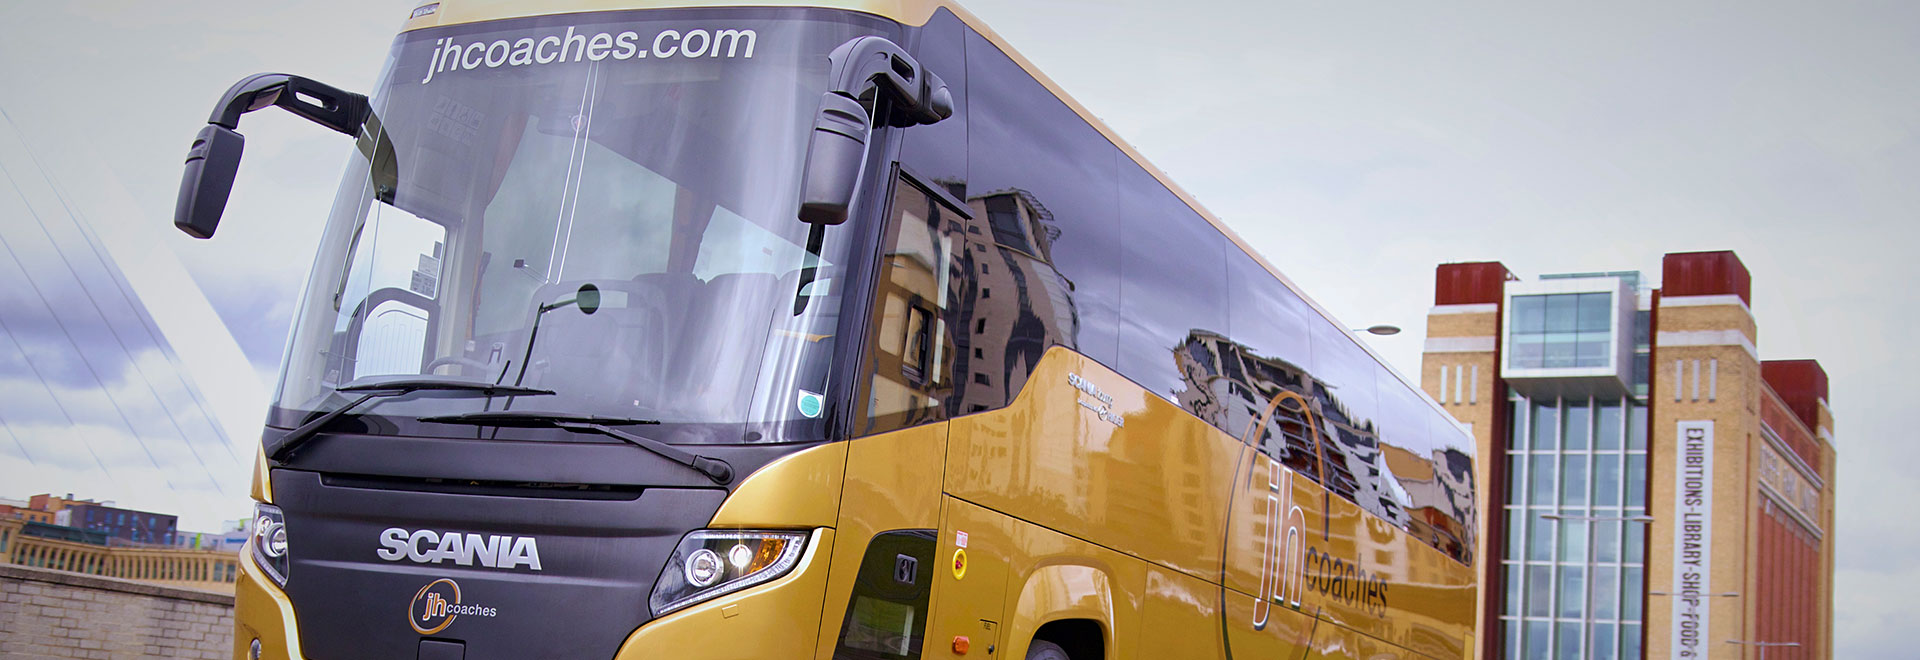 Coach Holidays, Day Excursions and Blackpool Express, from